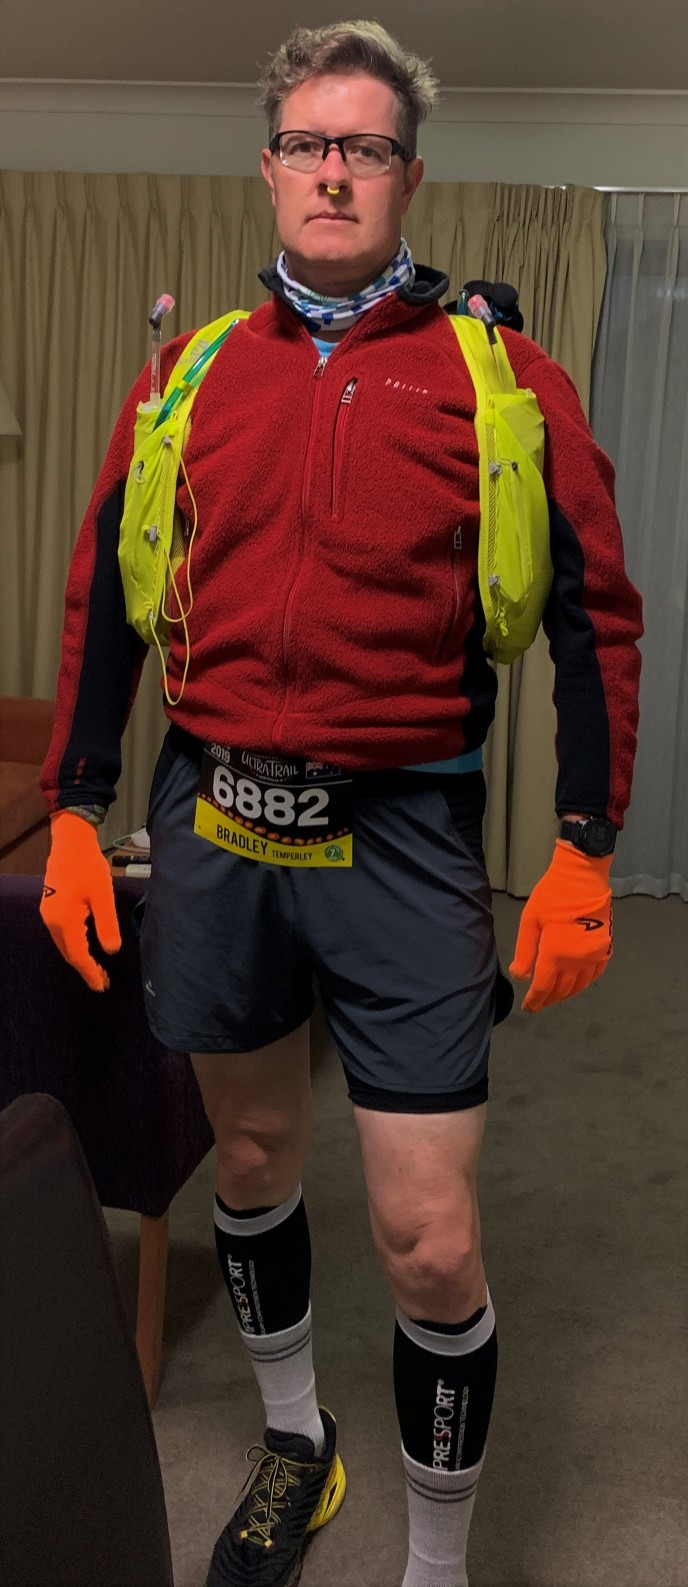 Bradley in full gear ready for UTA50 2019